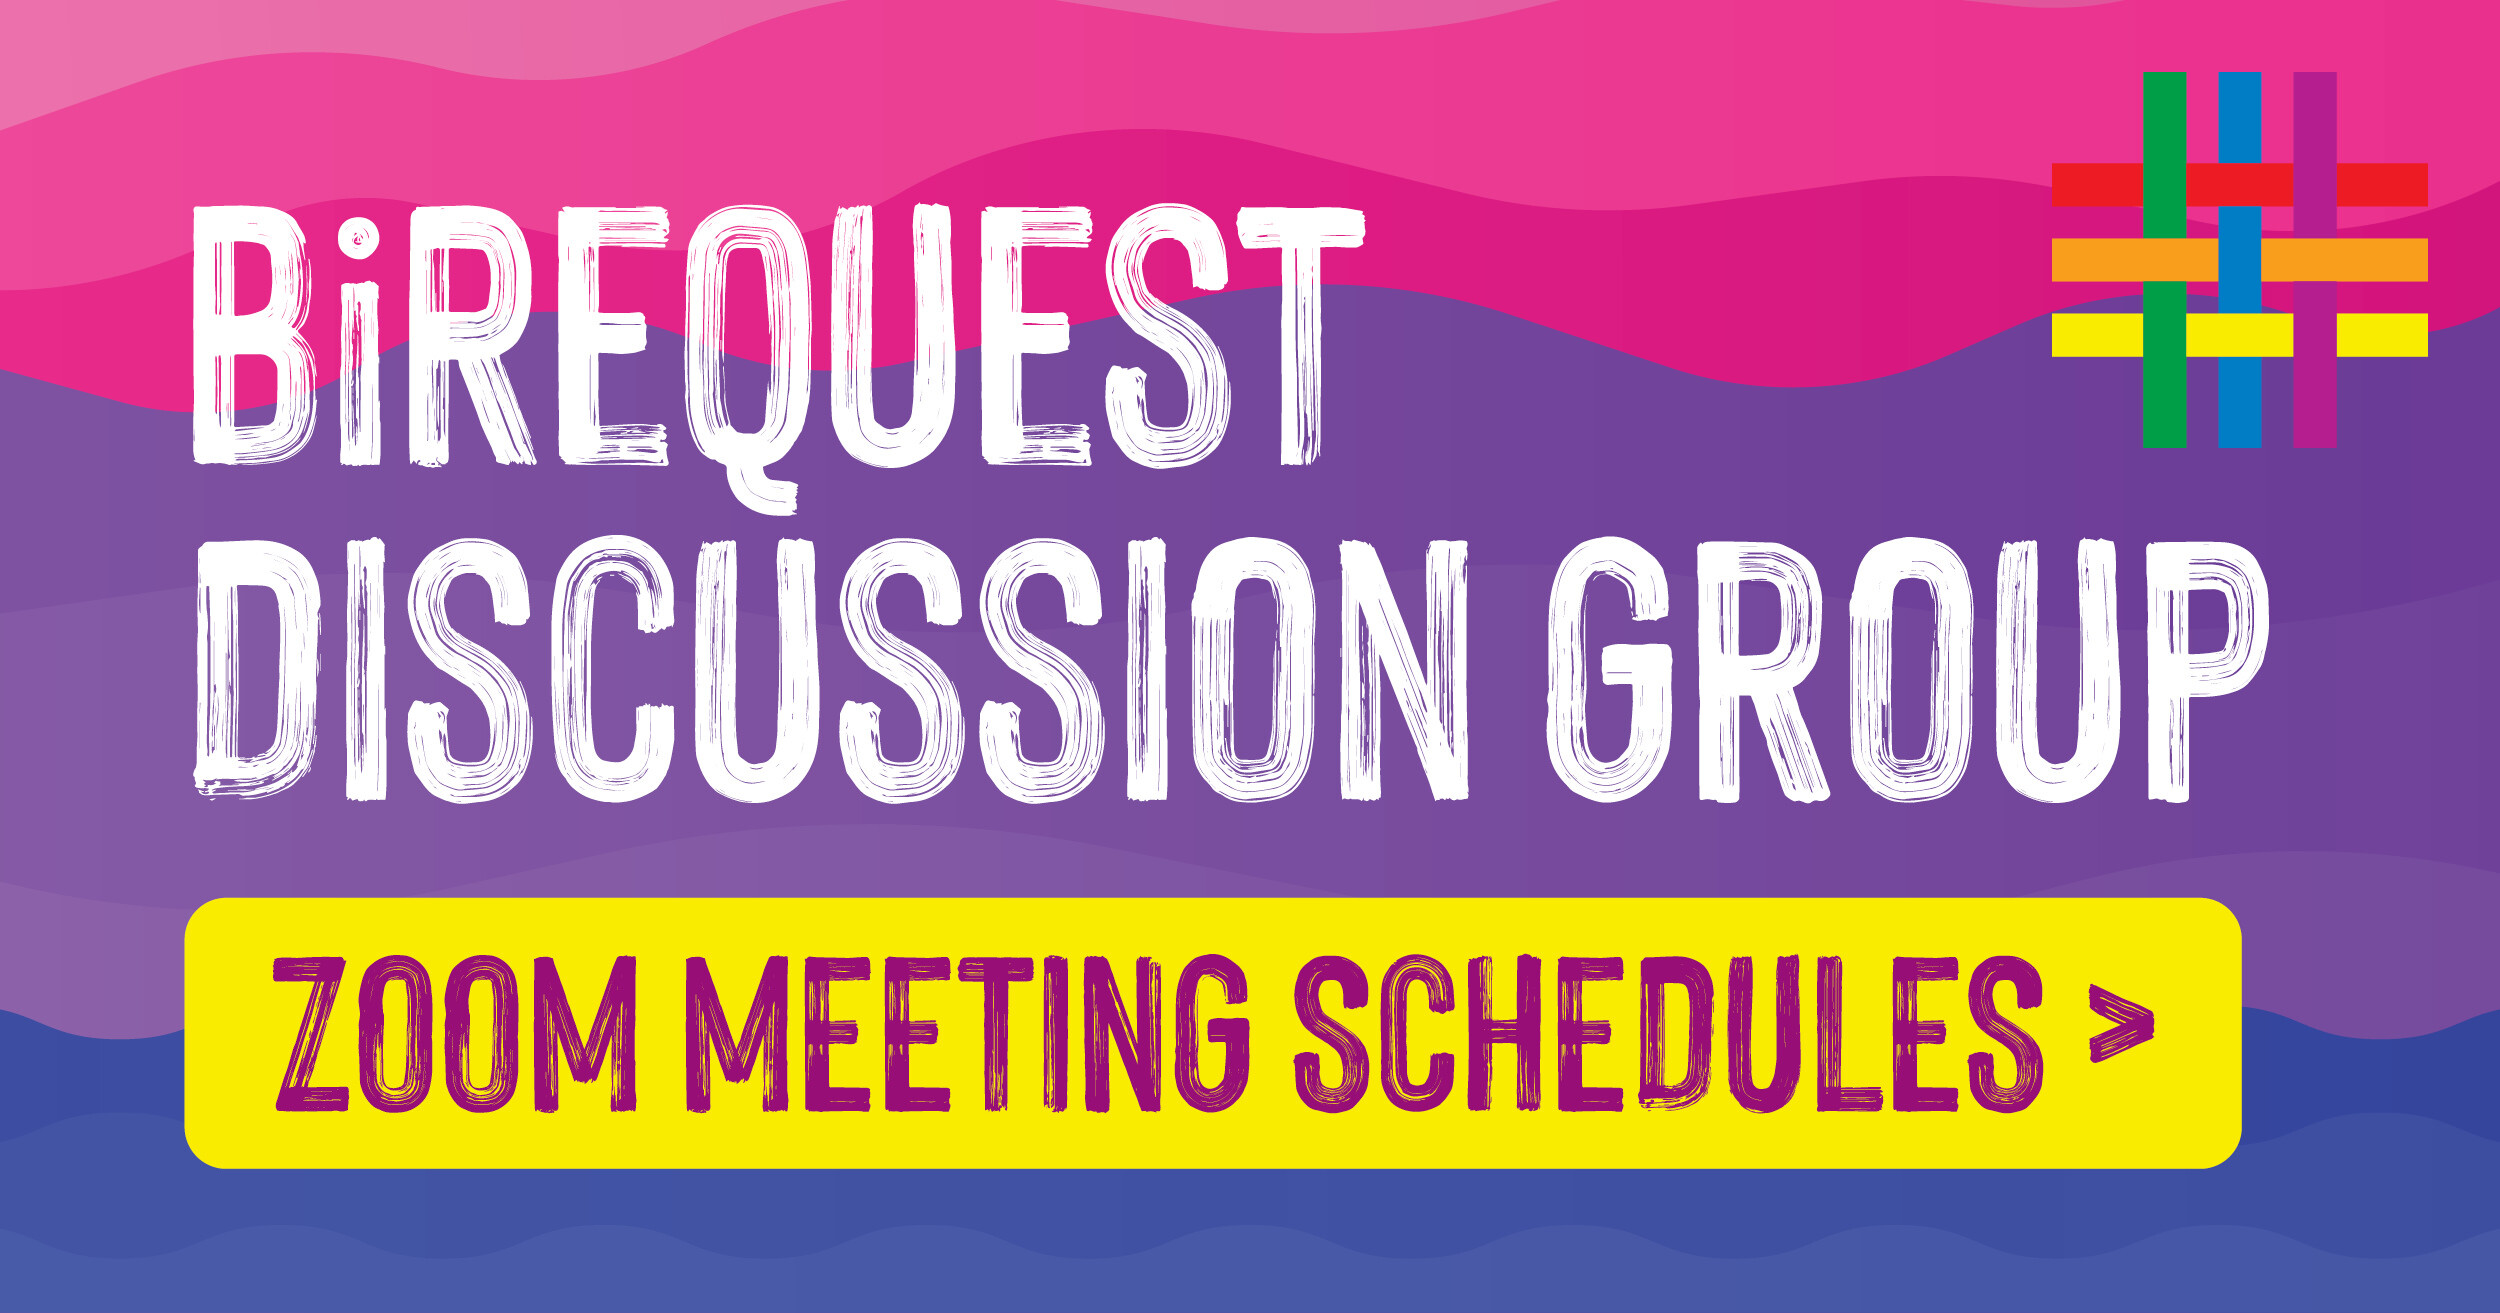 ZOOM MEETINGS: BiRequest Discussion Group at Brooklyn Community Pride Center